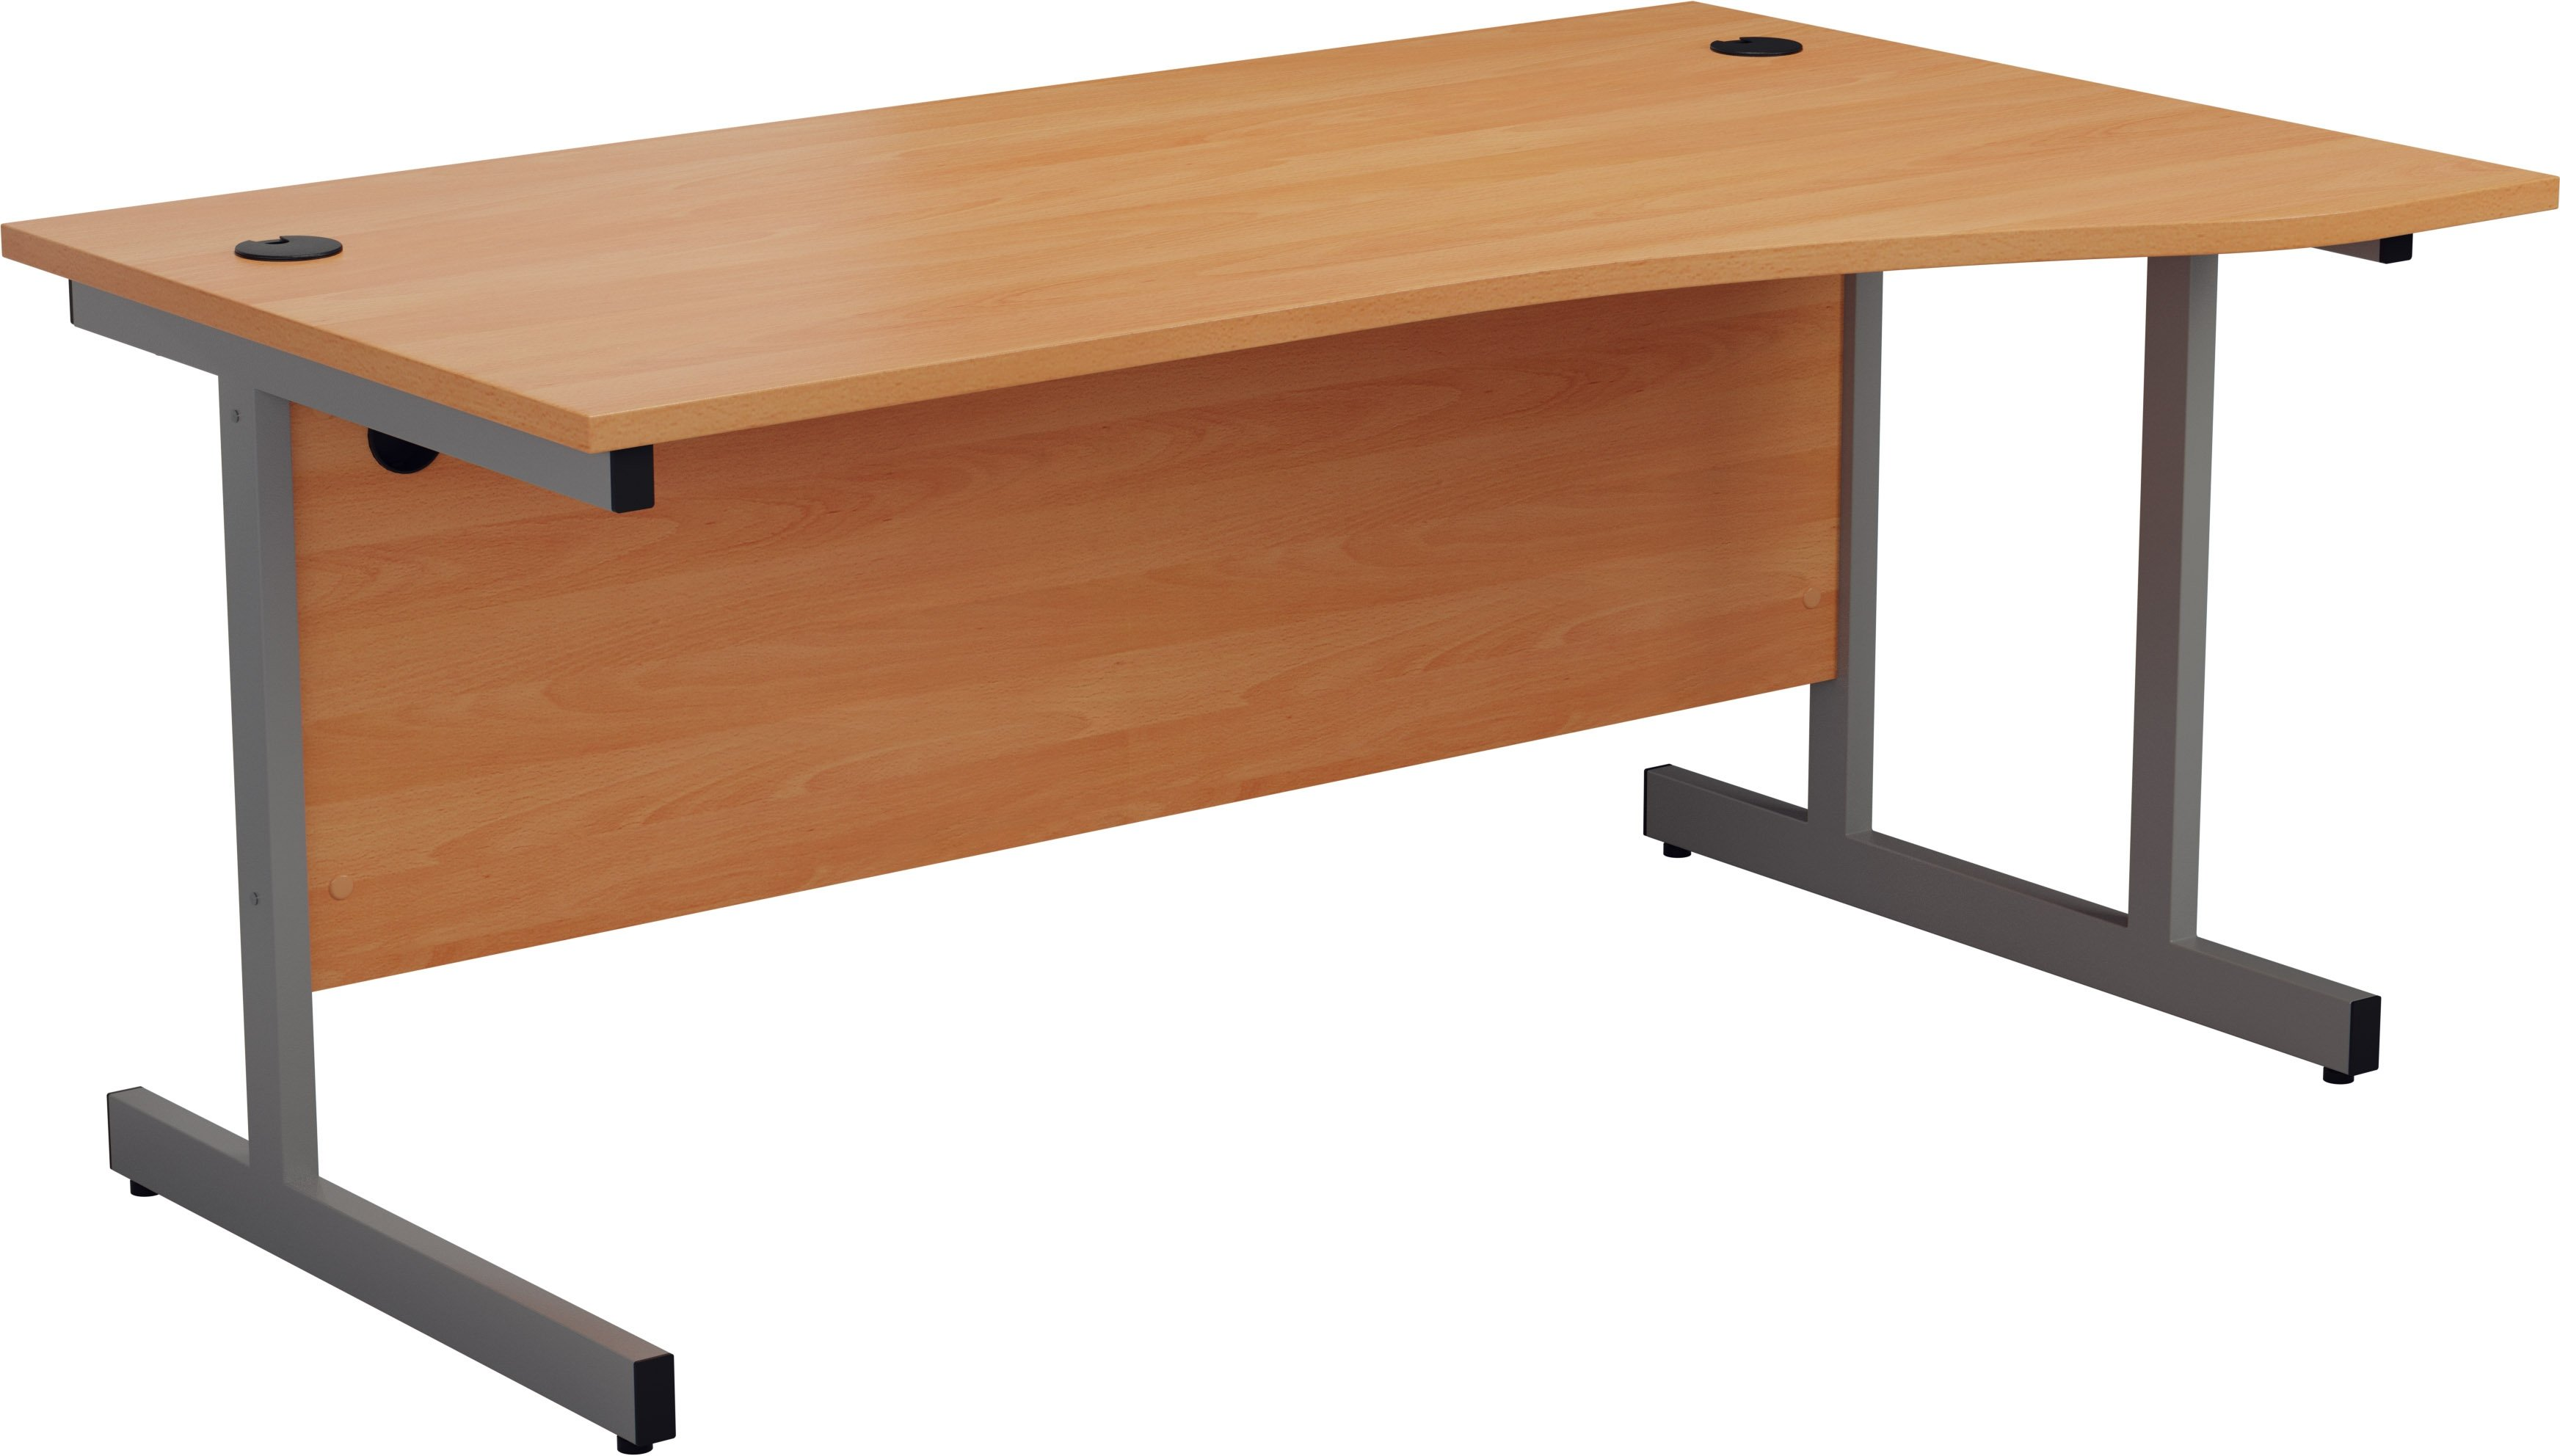 Tc Office Single Upright Wave Desk With Cantilever Legs W 1600mm X D 800mm 1000mm Office Furniture Direct